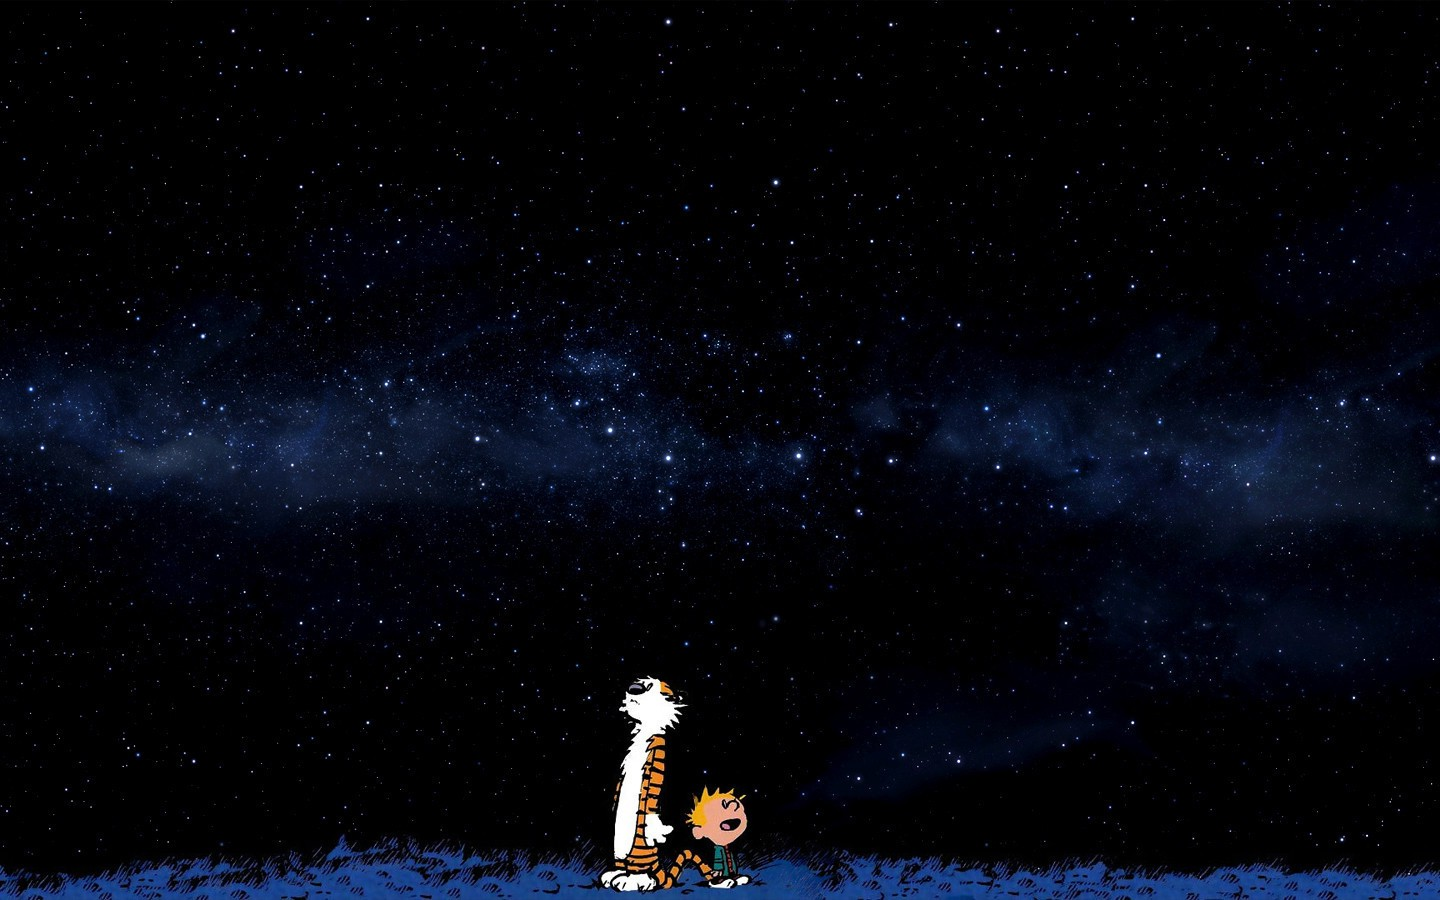 Rick And Morty Wallpaper Iphone Space Stars Blue Comics Calvin And Hobbes Wallpapers